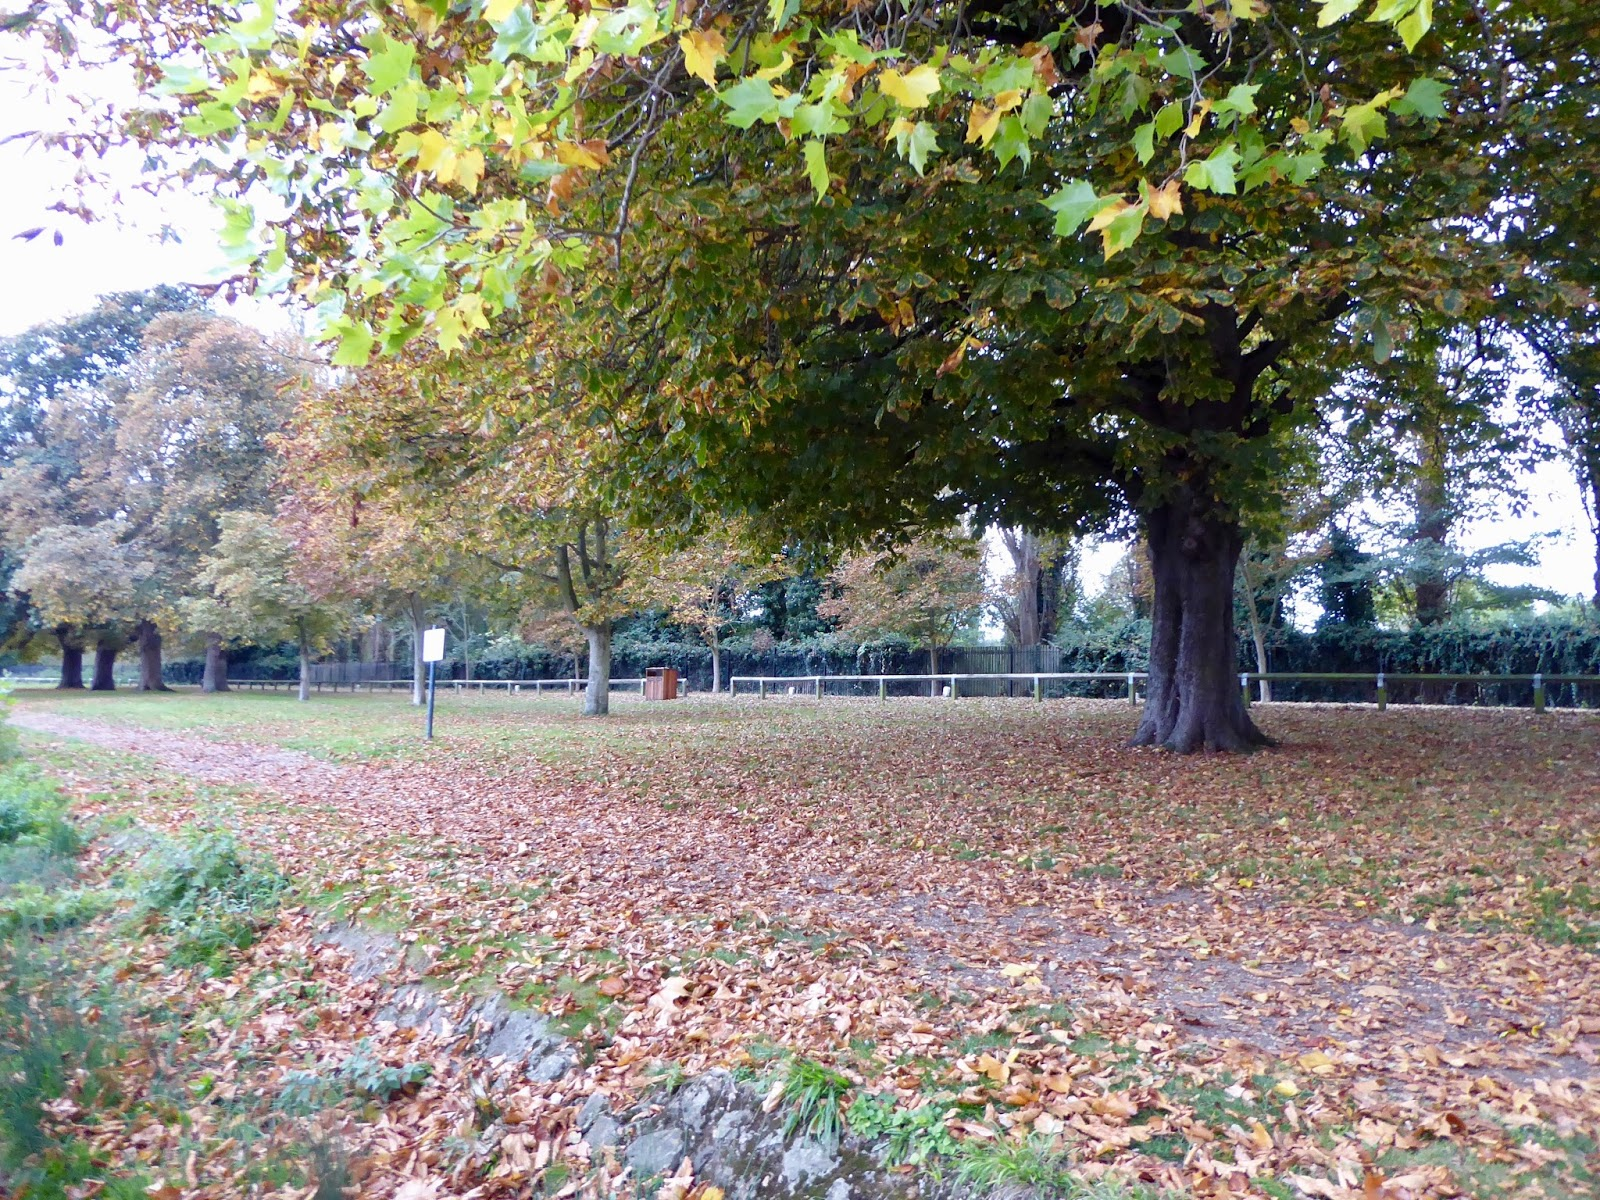 Autumn Is Definitely Upon Us As We Take A Walk In Home Park